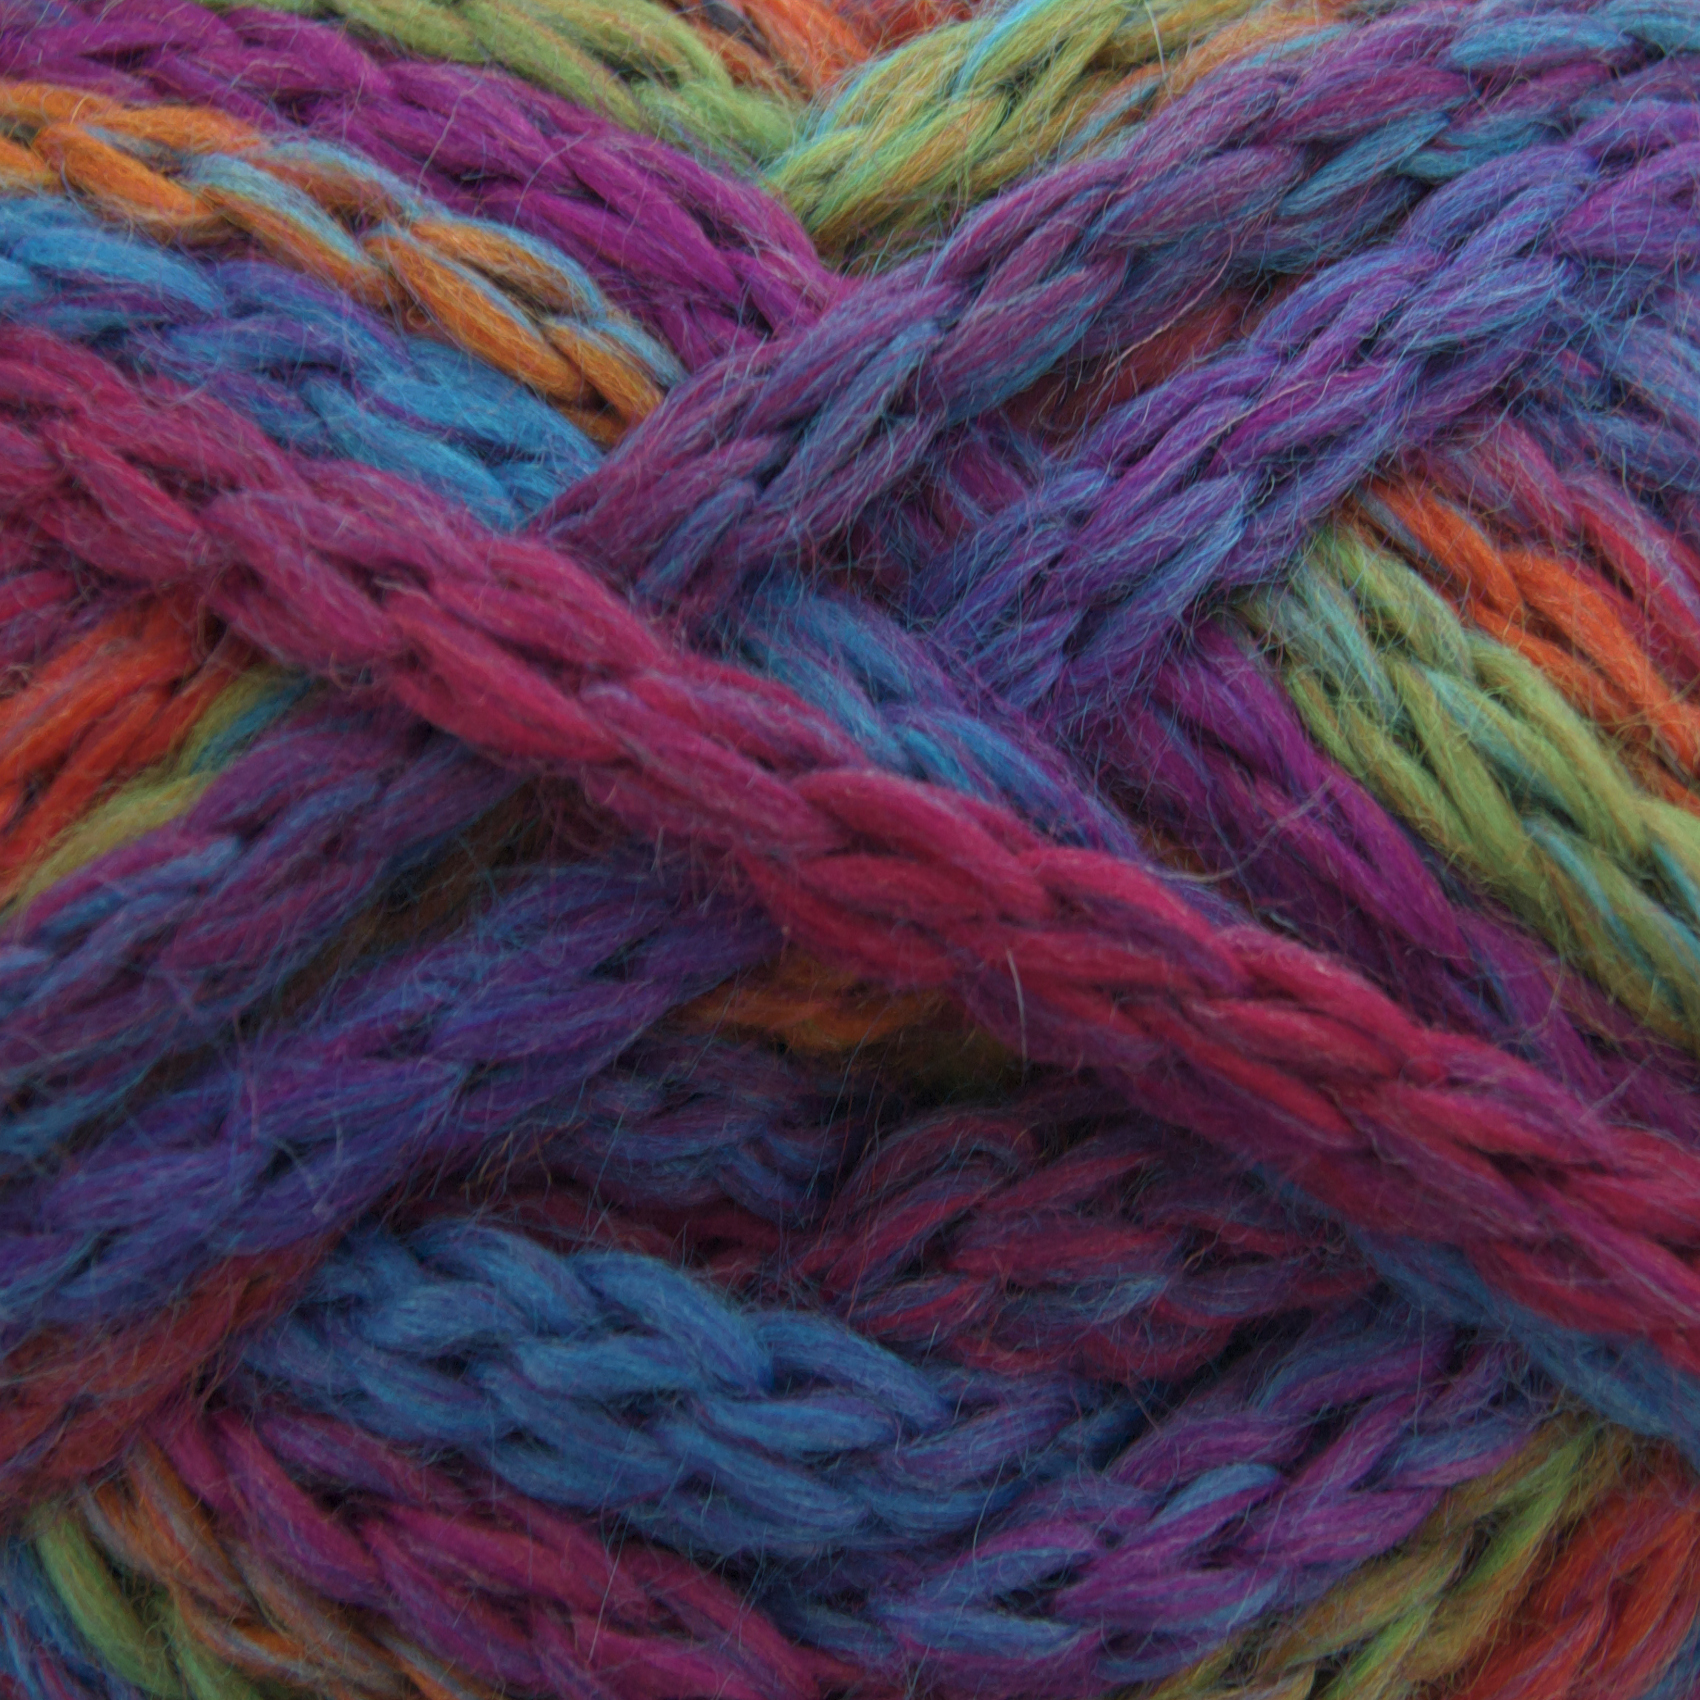 Acrylic Yarn : ... Ball Ultimate Super Chunky Knitting Yarn Soft Acrylic Wool Mix eBay